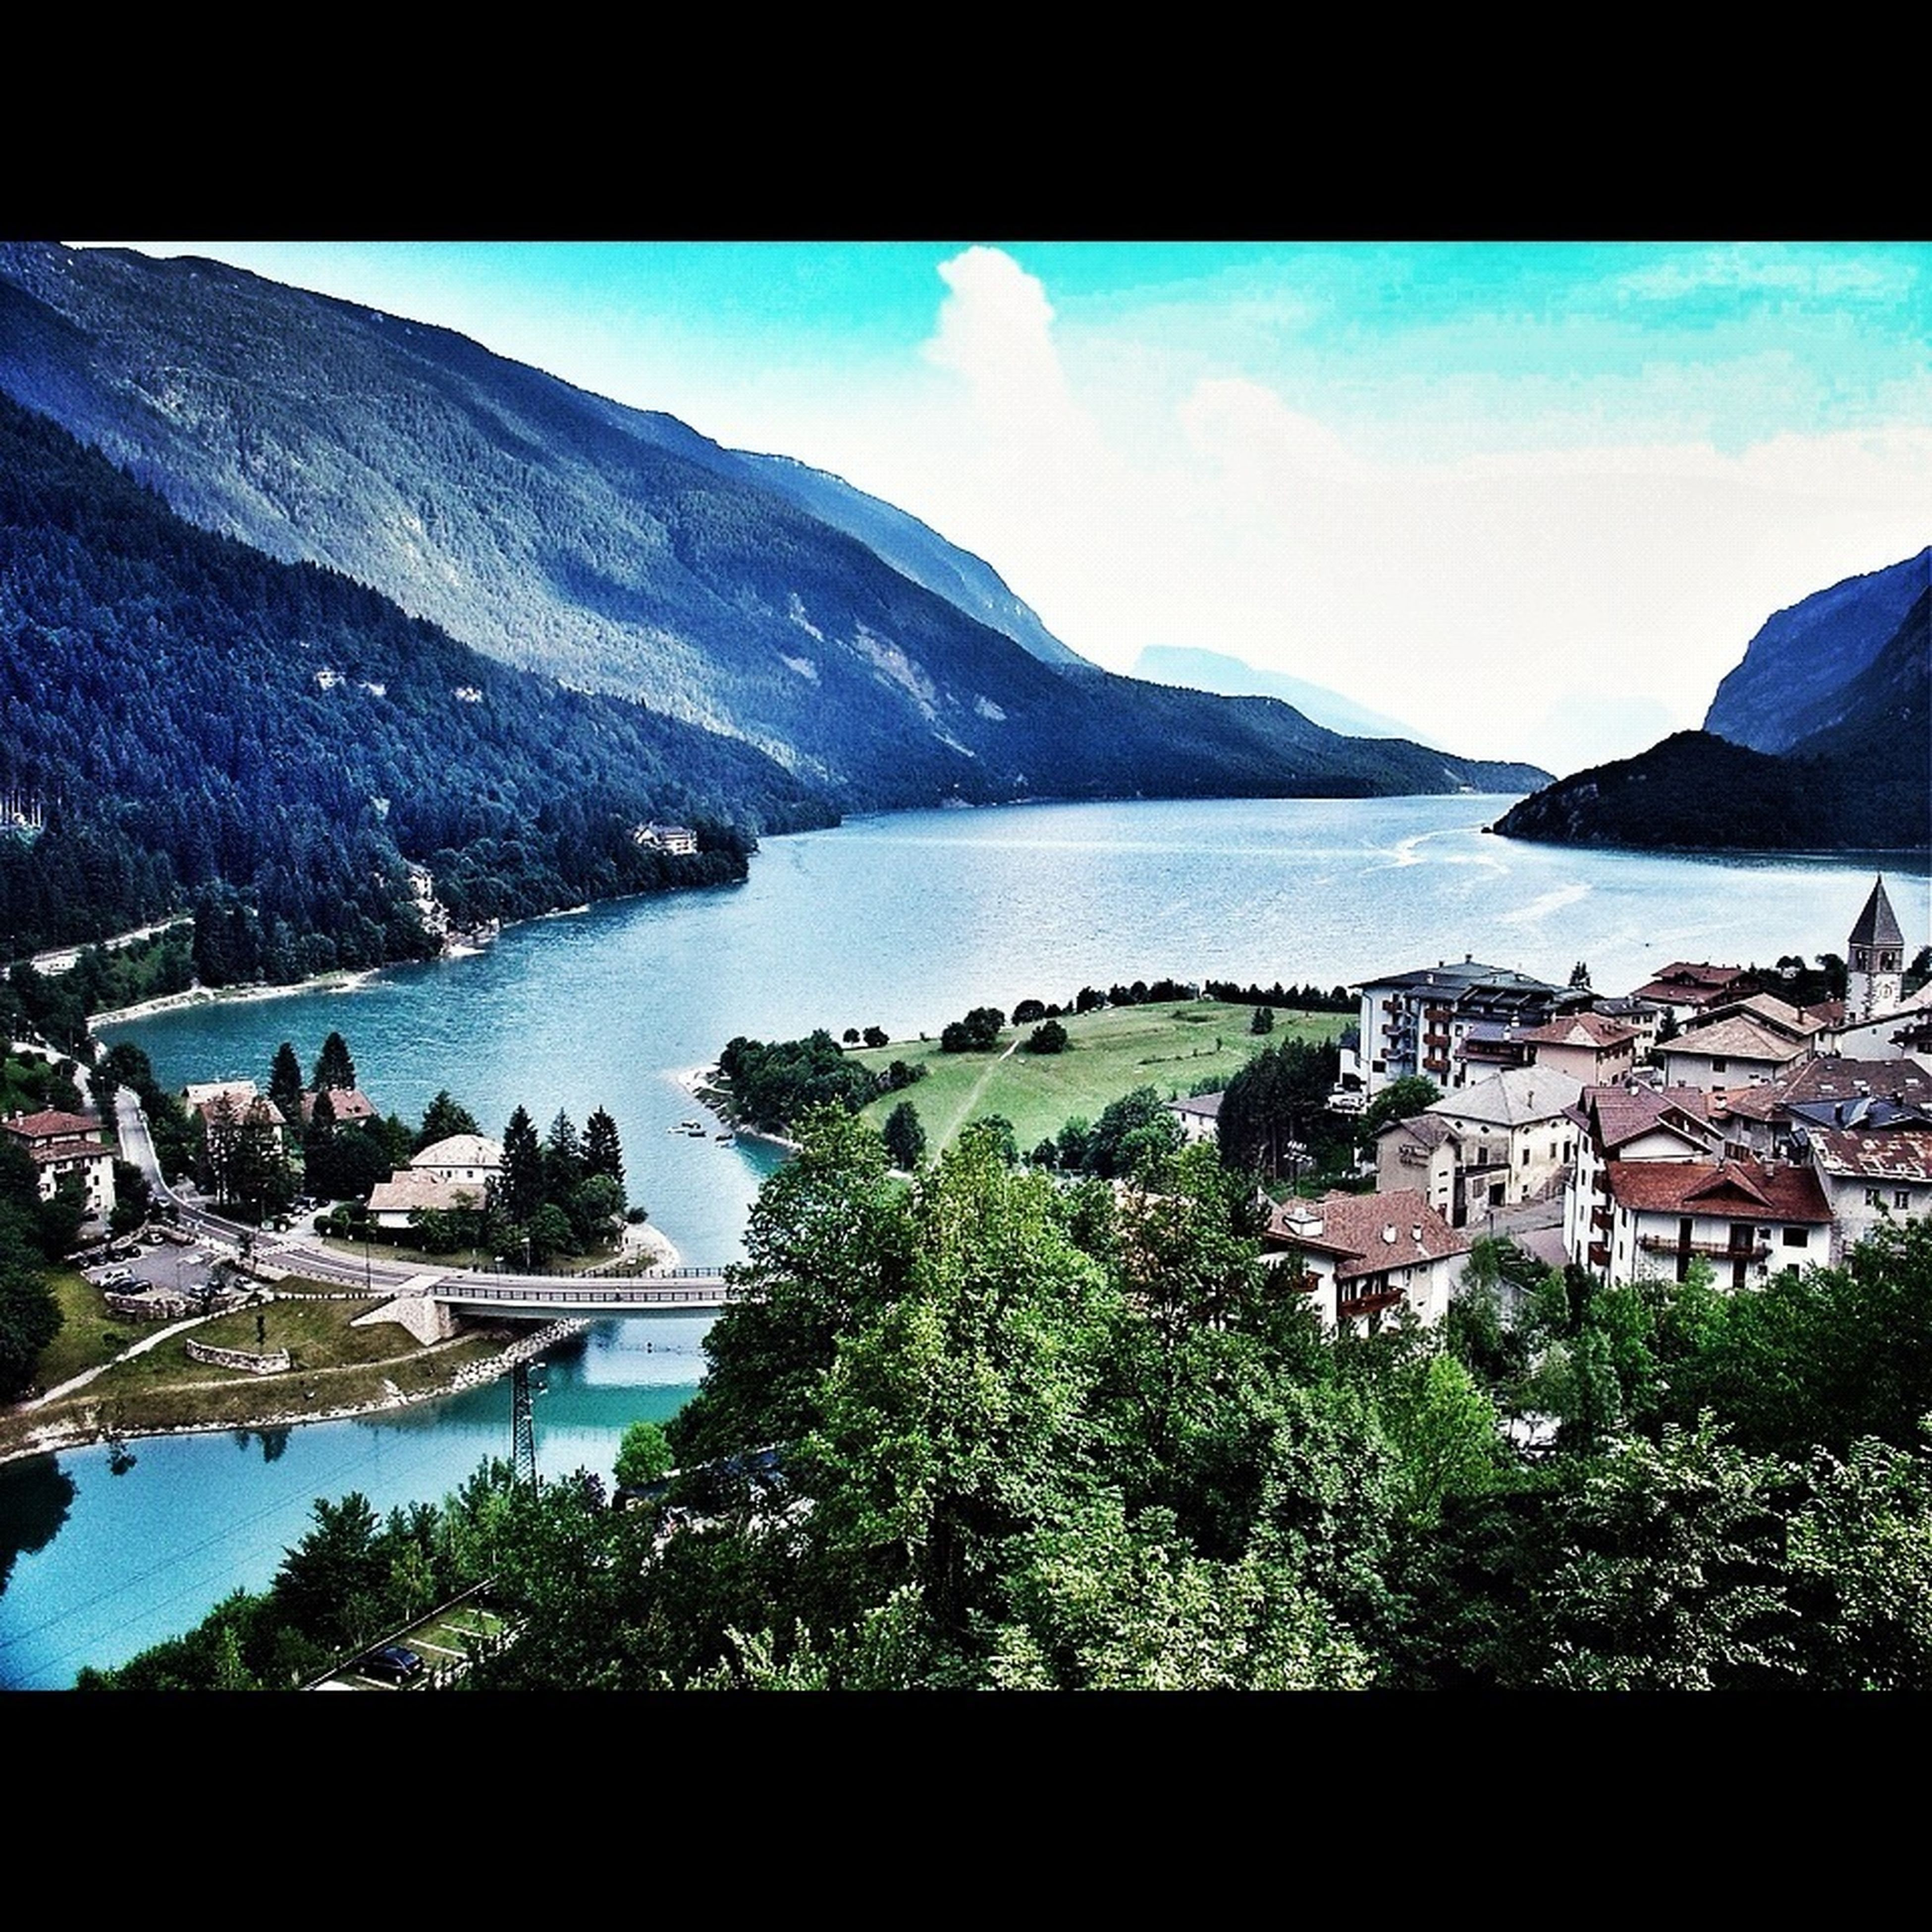 water, mountain, building exterior, architecture, built structure, sky, sea, house, transfer print, town, mountain range, residential structure, scenics, tree, lake, blue, nature, high angle view, townscape, beauty in nature